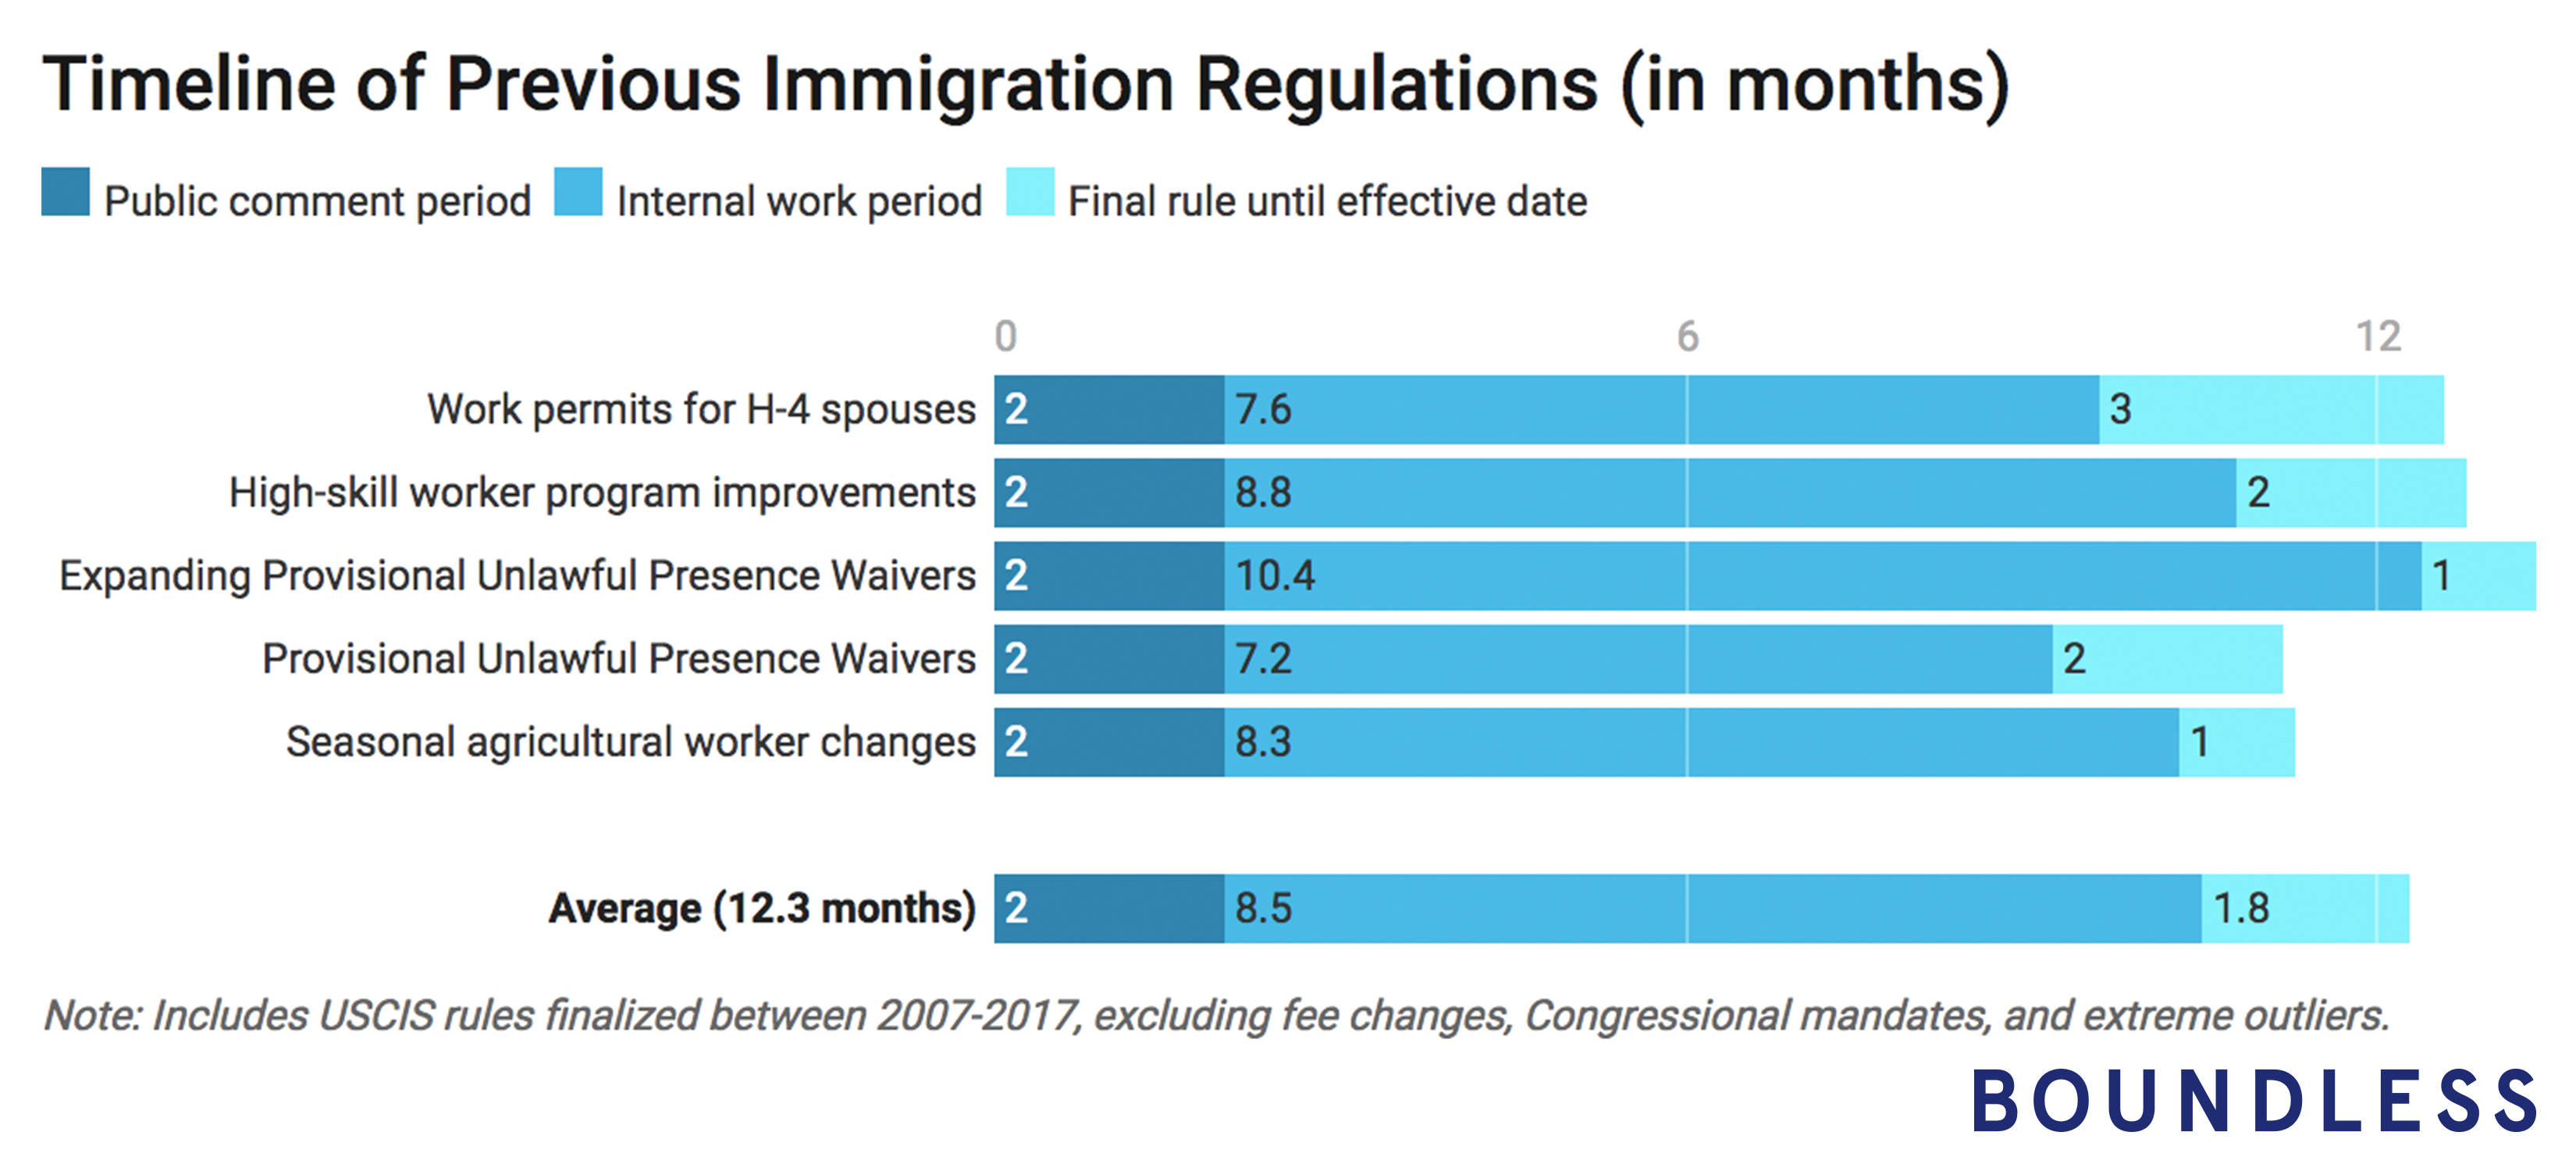 Timeline of Previous USCIS Regulations - Boundless.com